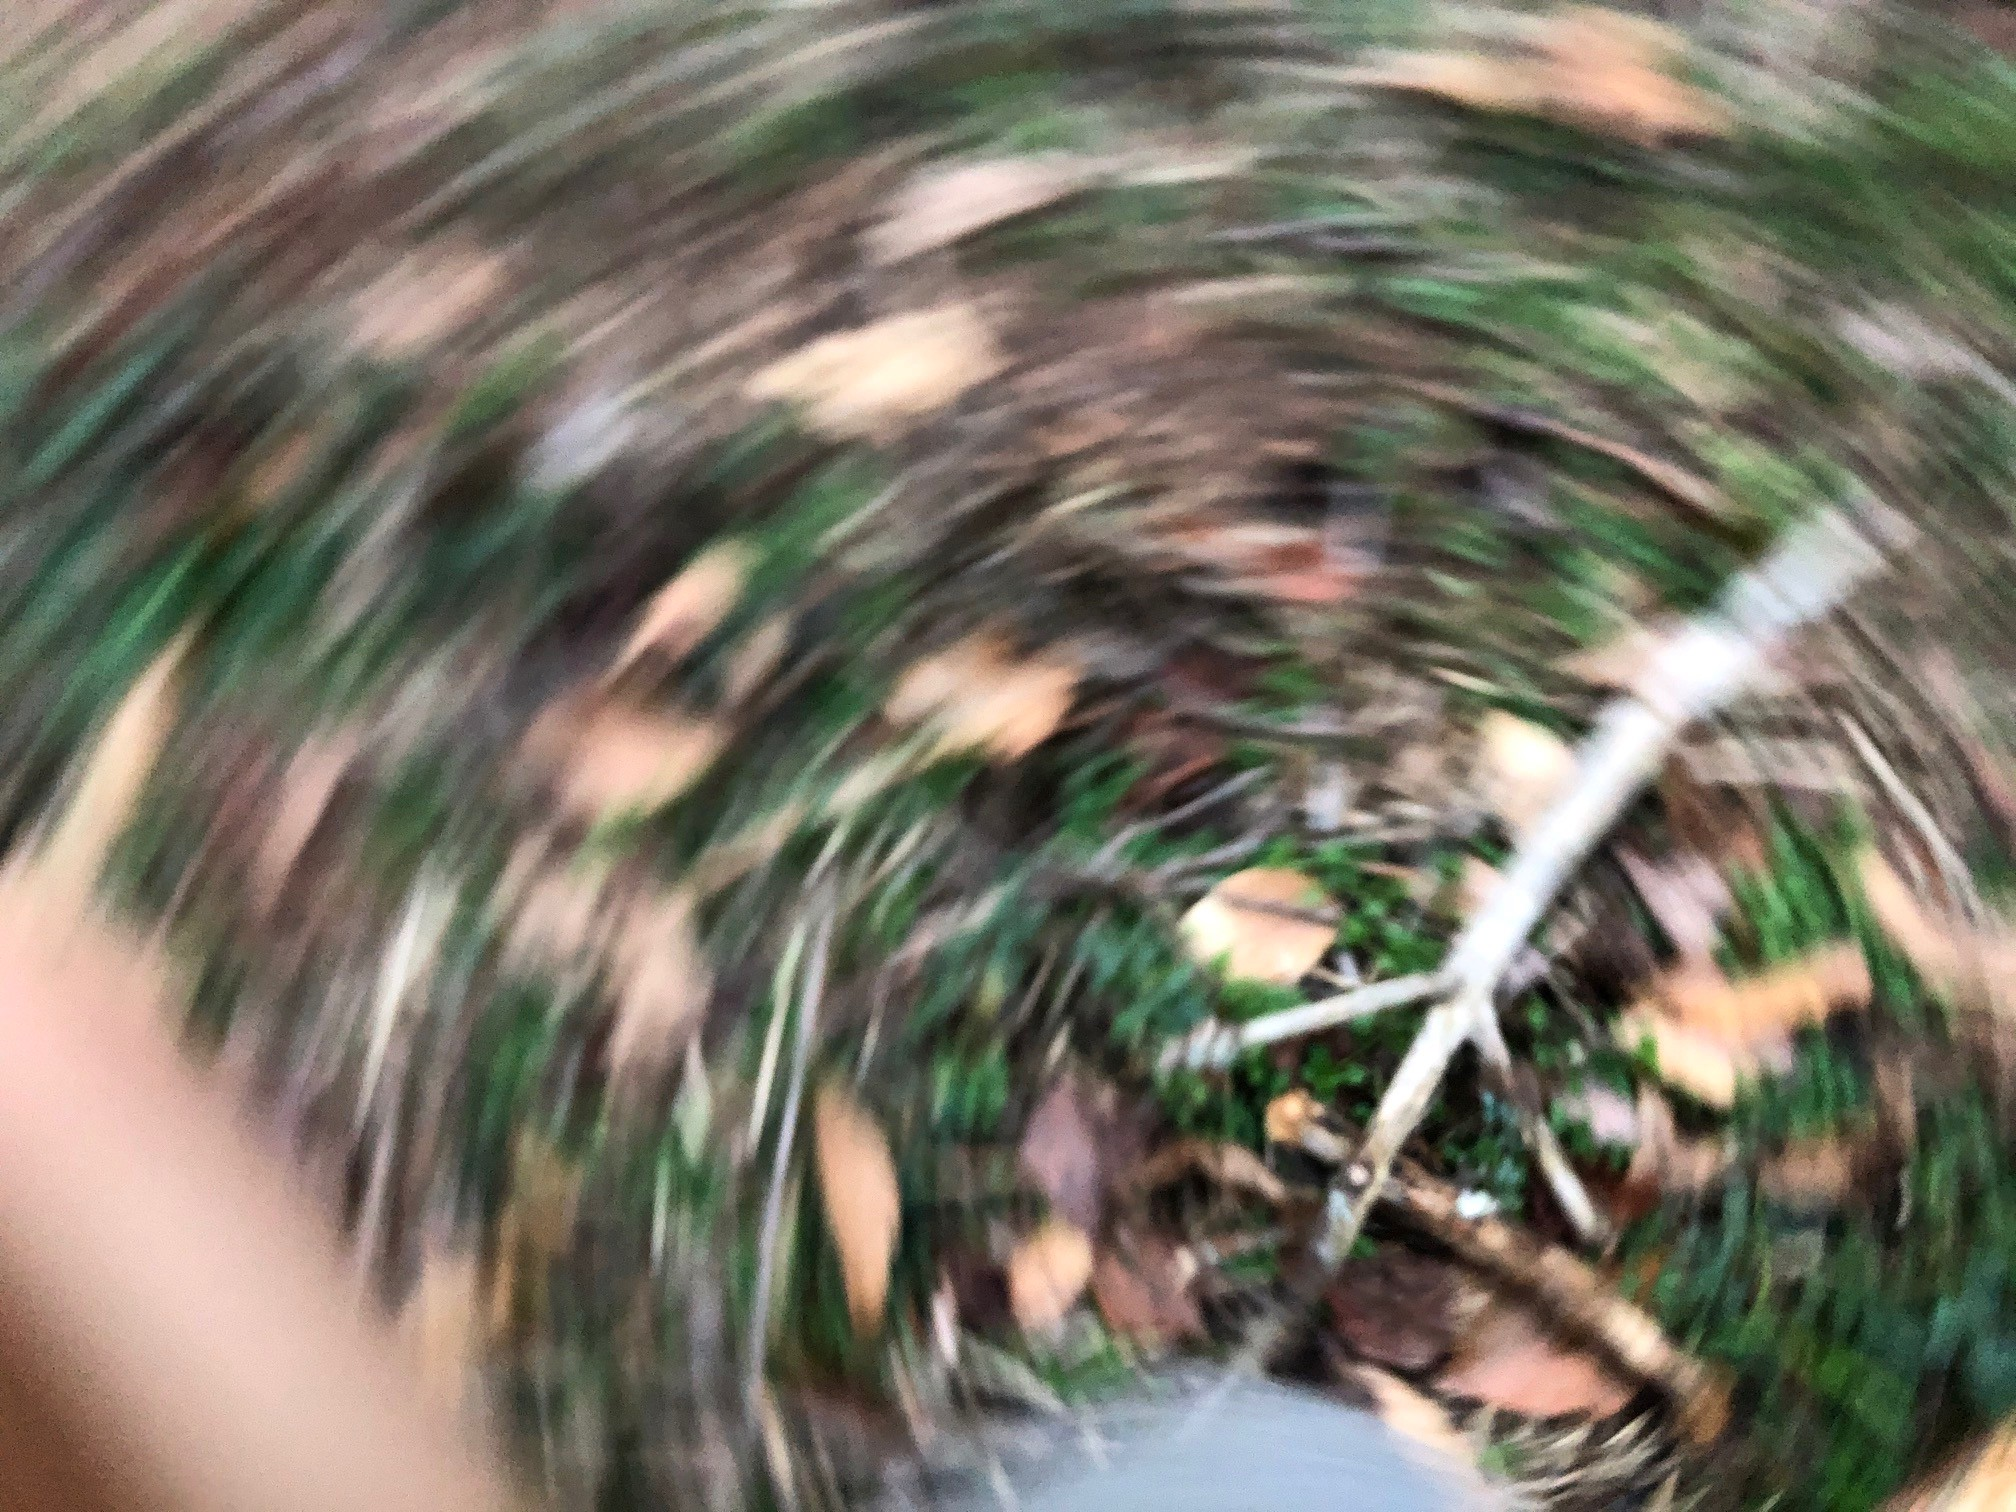 The photo shows a swirl of leaves, grass, a stick, all blurred by the phone moving as the photo was being taken.